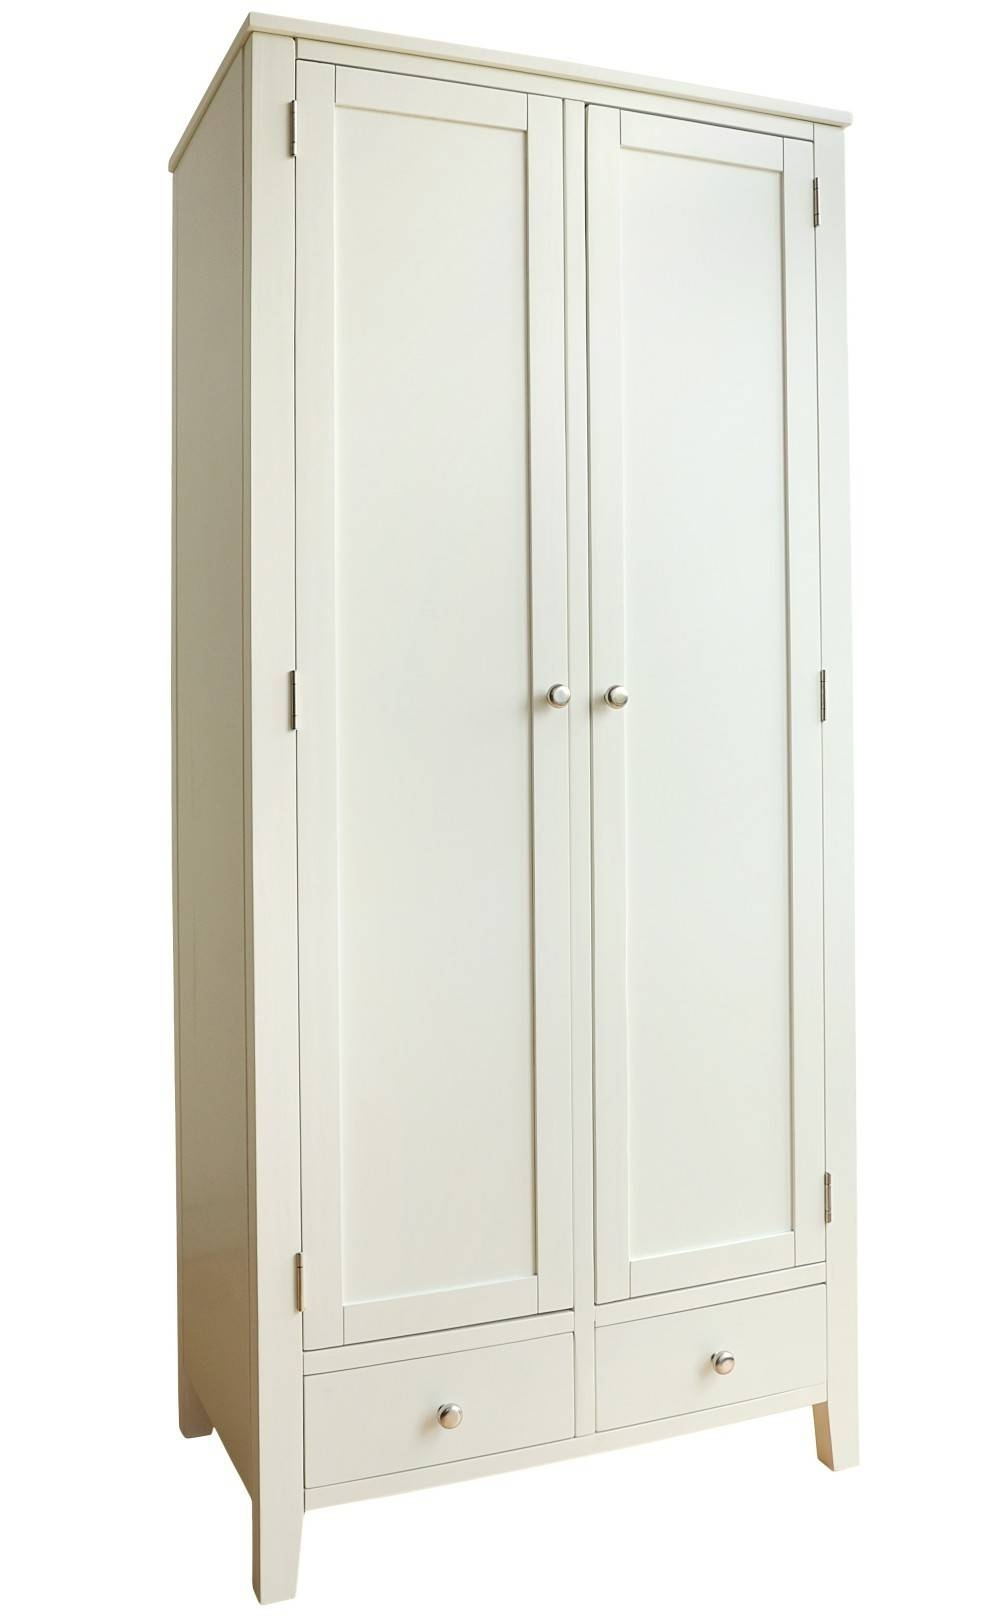 Brooklyn Ivory White Double Wardrobe With 2 Drawers| Bedroom intended for White Double Wardrobes With Drawers (Image 2 of 15)